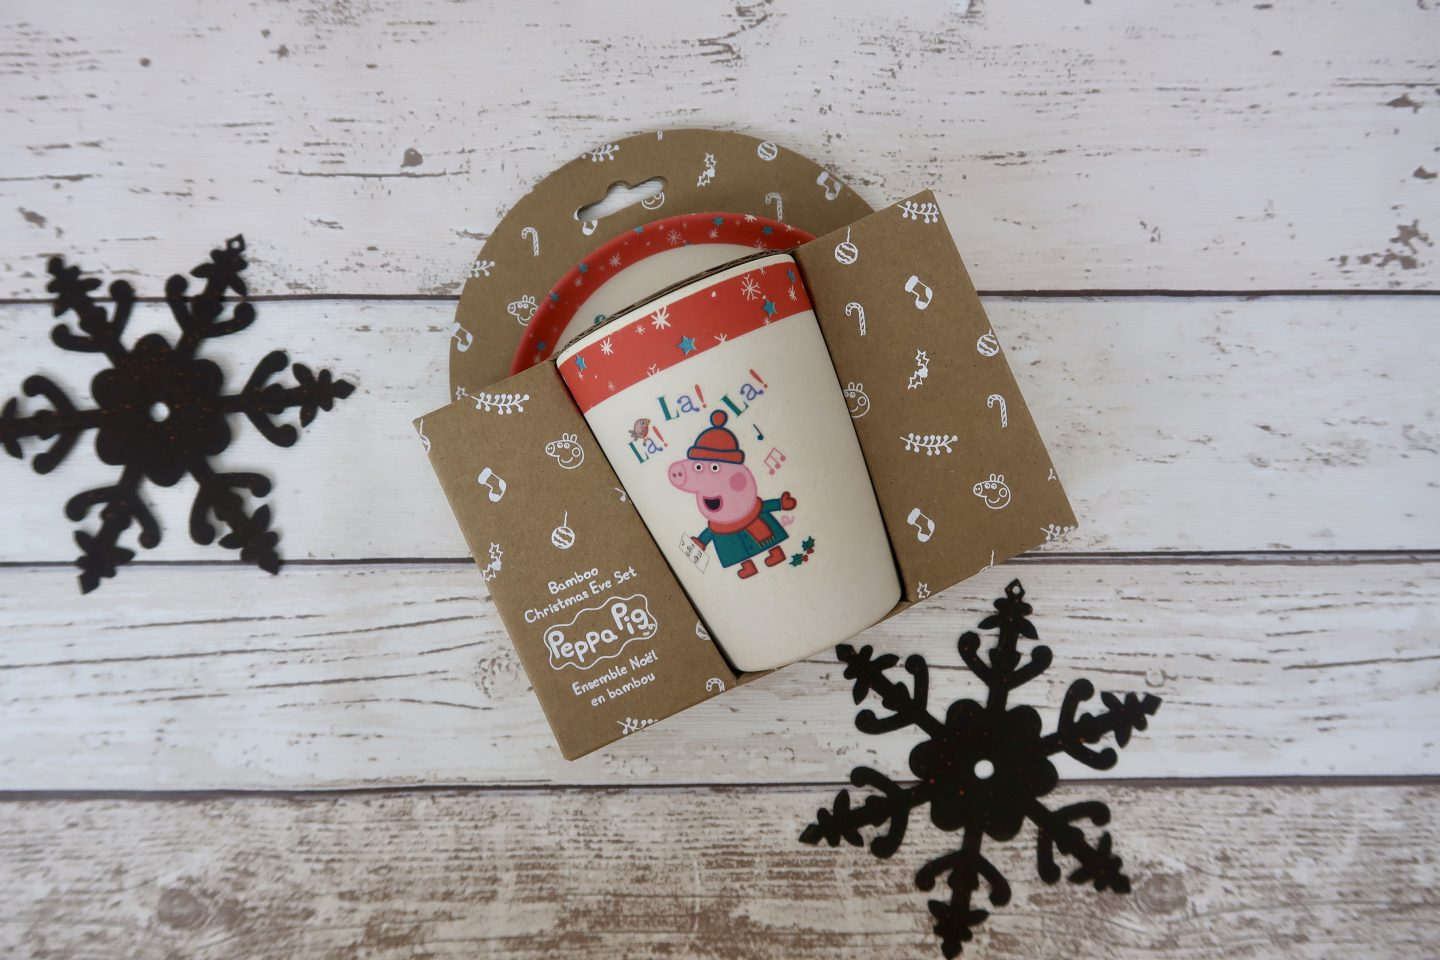 A Peppa Pig Christmas Eve plate and cup in its packaging with 2 metal snowflakes around it